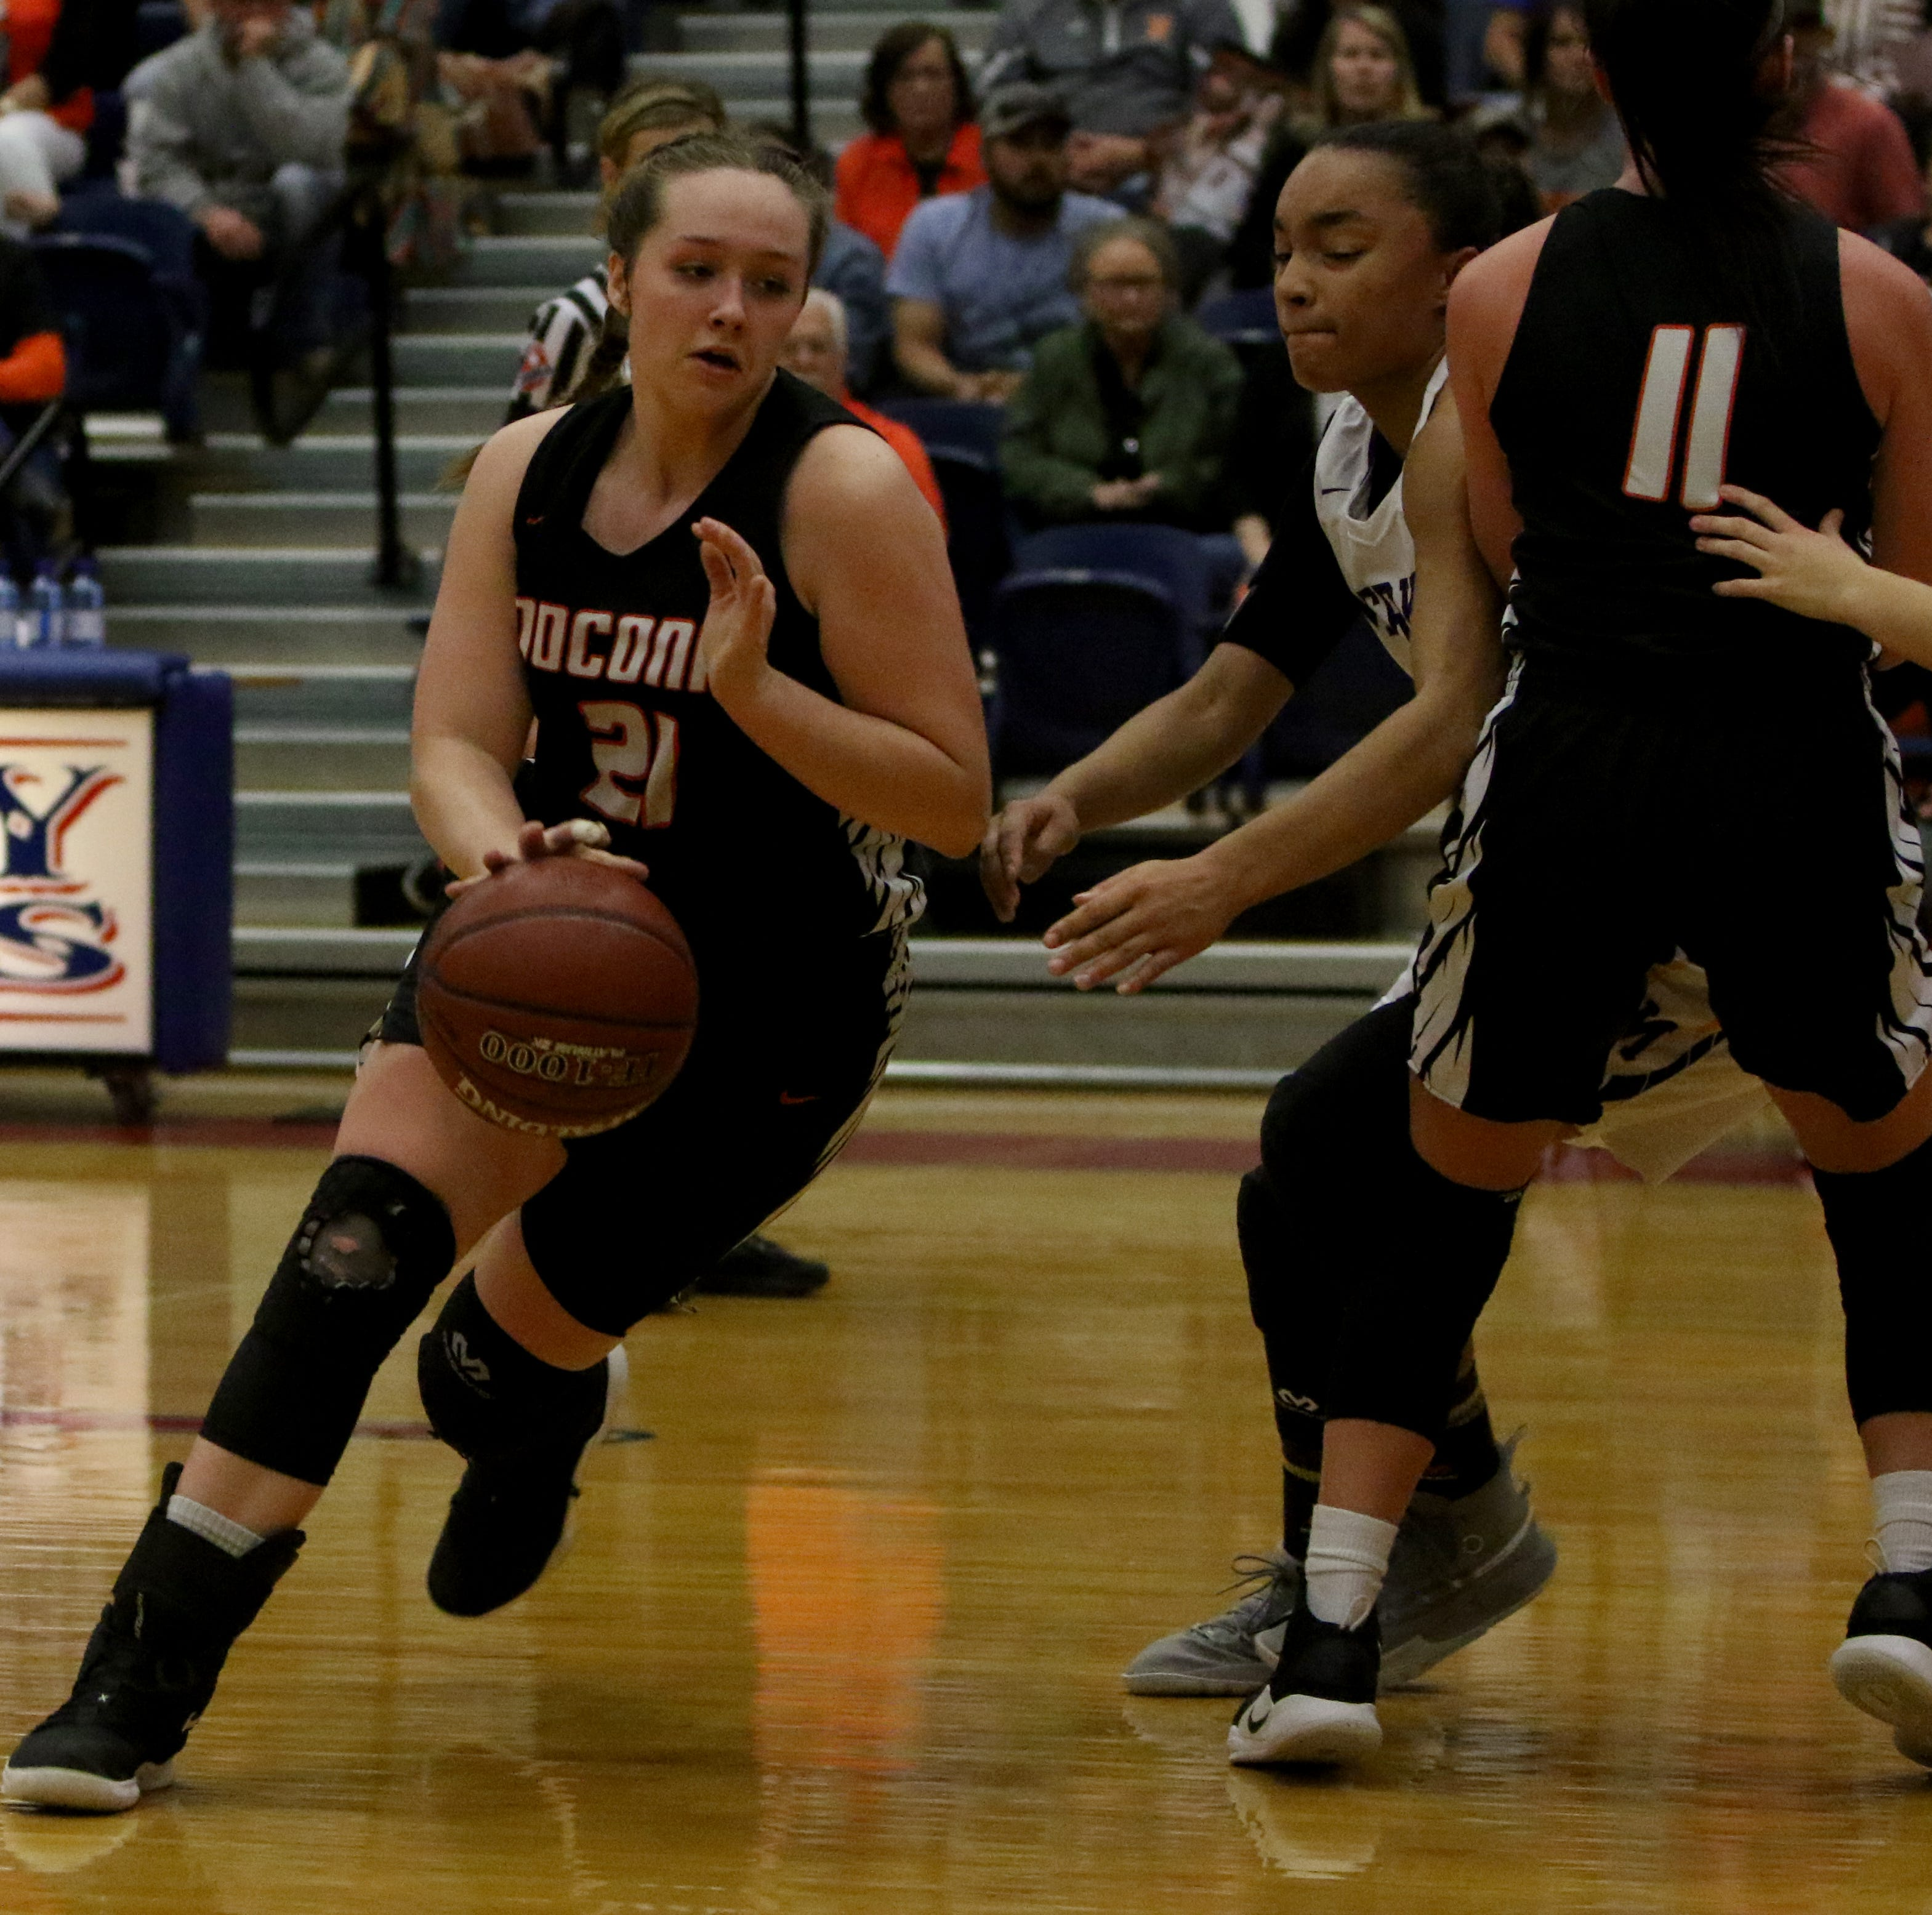 Averee Kleinhans drops 40, leading Nocona to rout of Merkel in area round